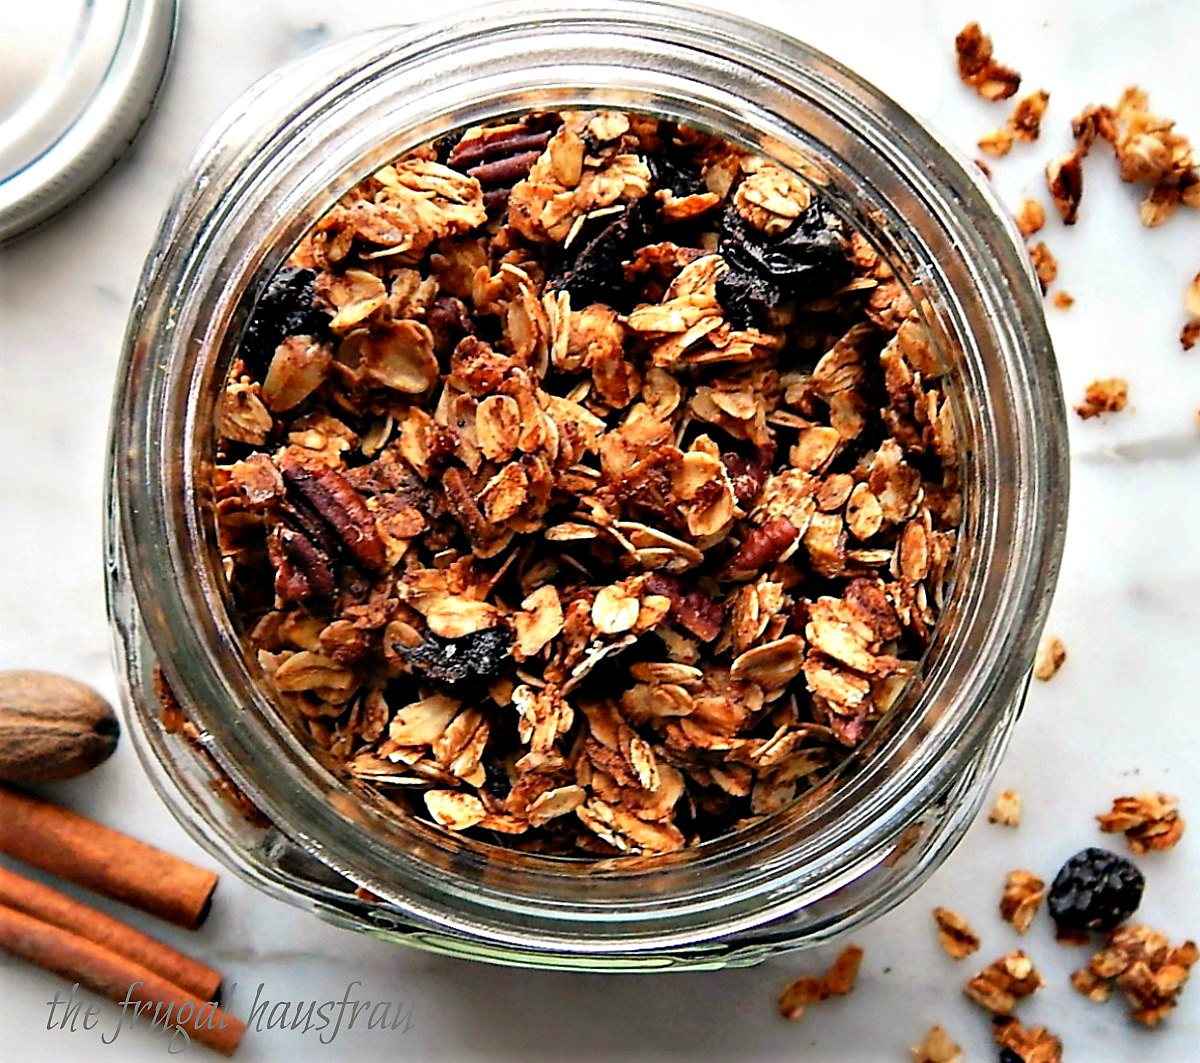 Home-made Gingerbread Granola with Dried Cherries & Pecans